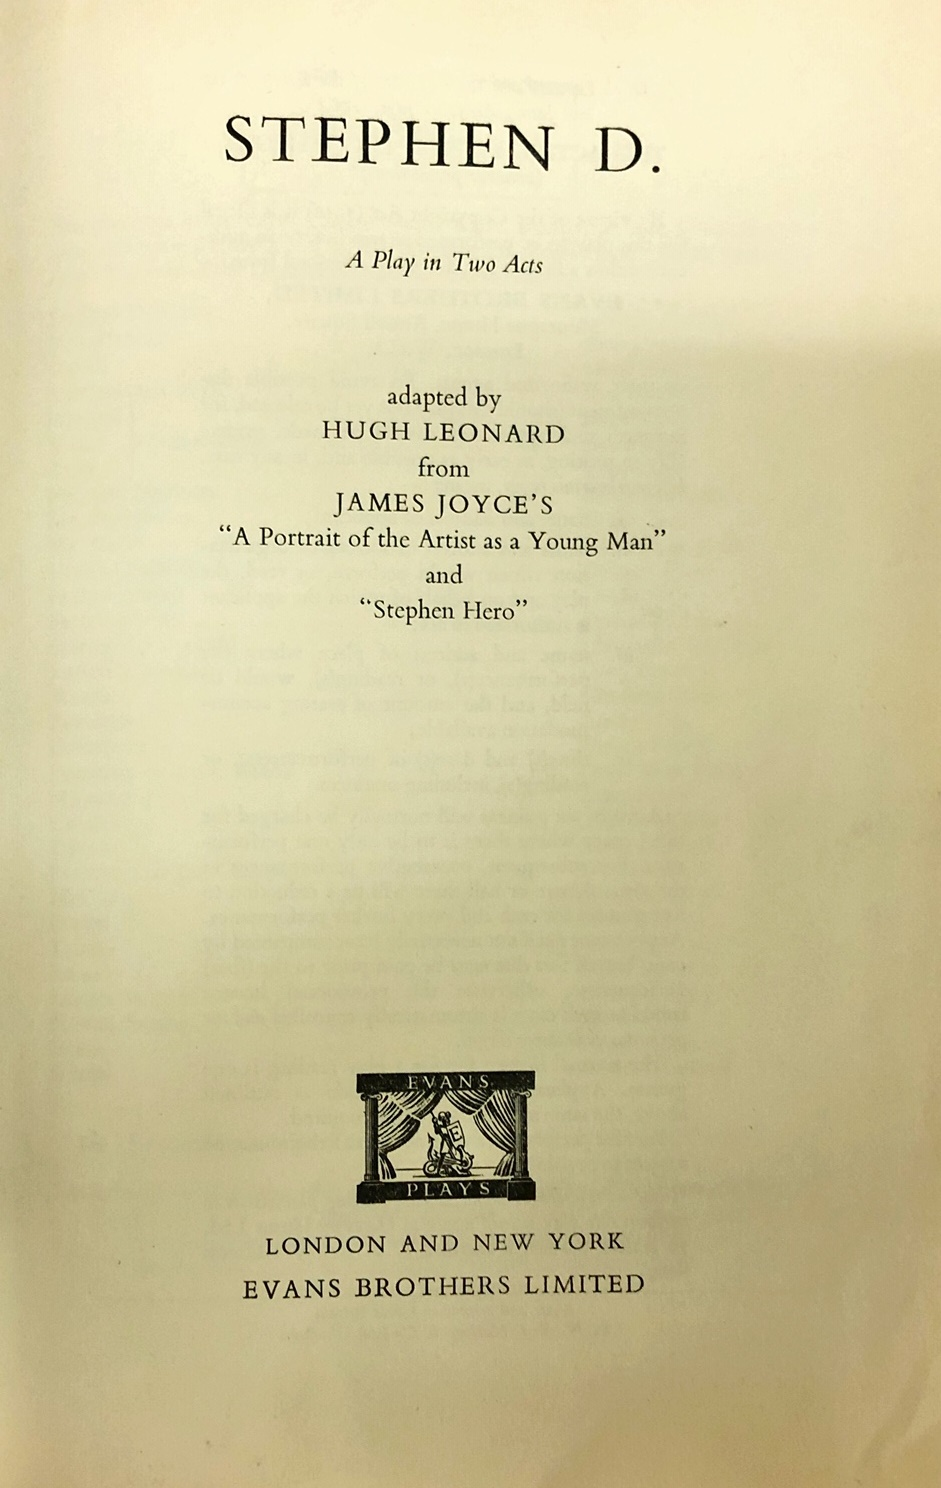 Lot 42 - Leonard (Hugh) Stephen D. A Play in Two Acts, Adopted by Hugh Leonard from James Joyce, 8vo L. 1964.